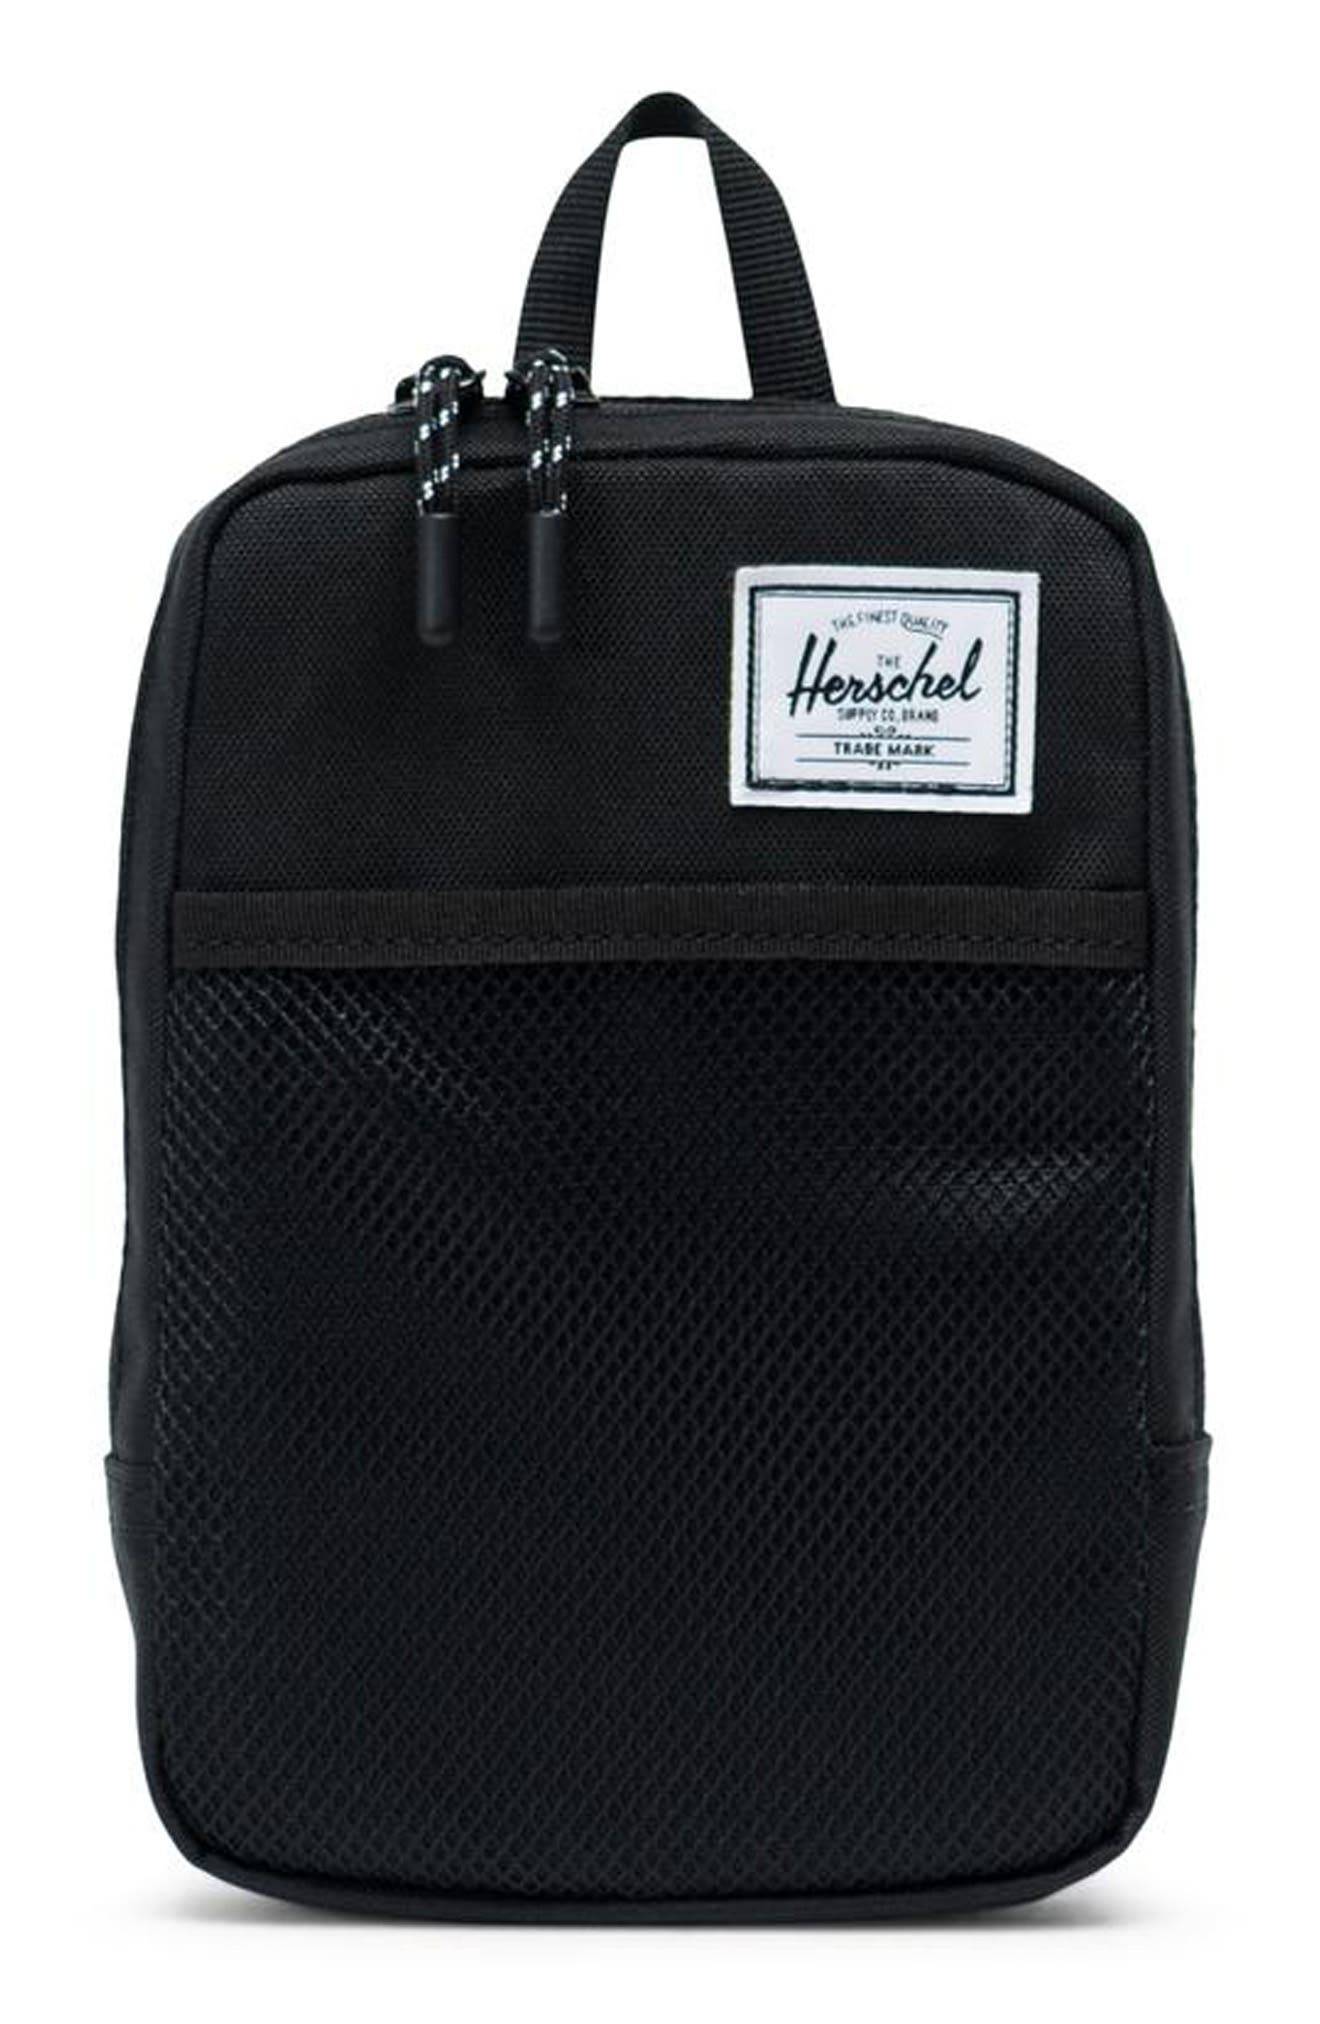 Herschel Supply Co. Large Sinclair Crossbody Bag